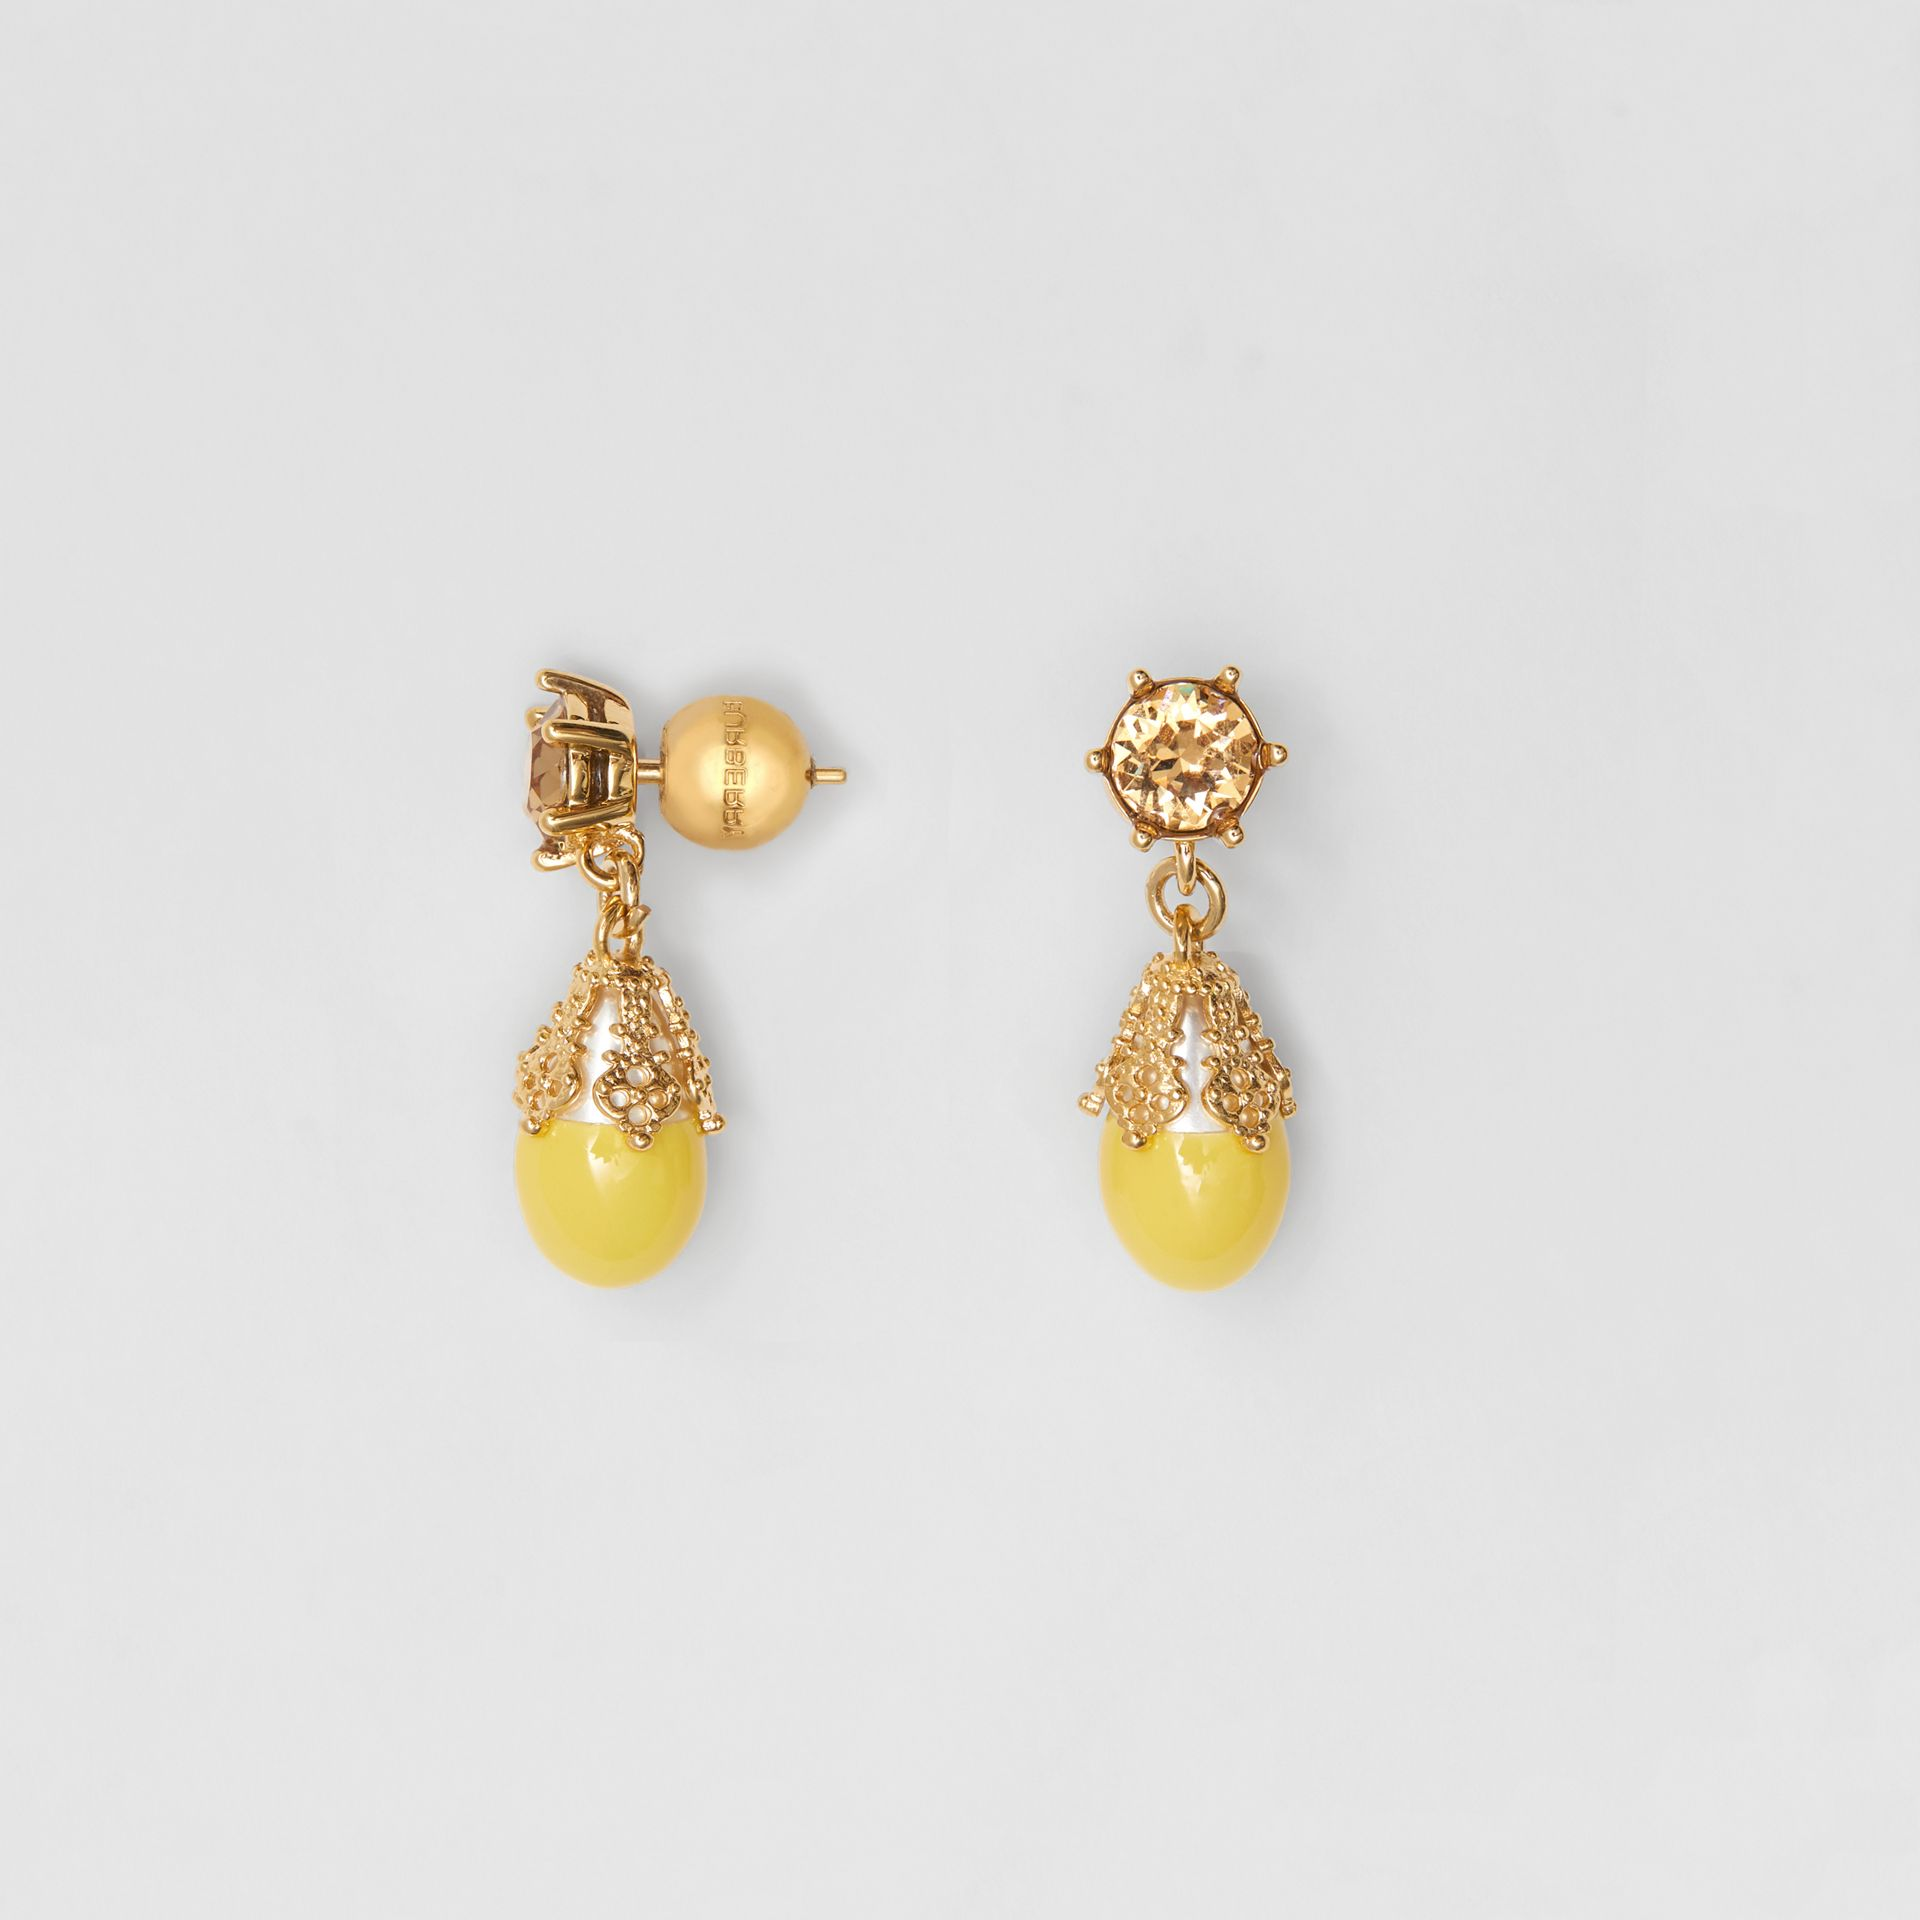 Gold-plated Faux Pearl Charm Earrings in Light Topaz/light - Women | Burberry United States - gallery image 3